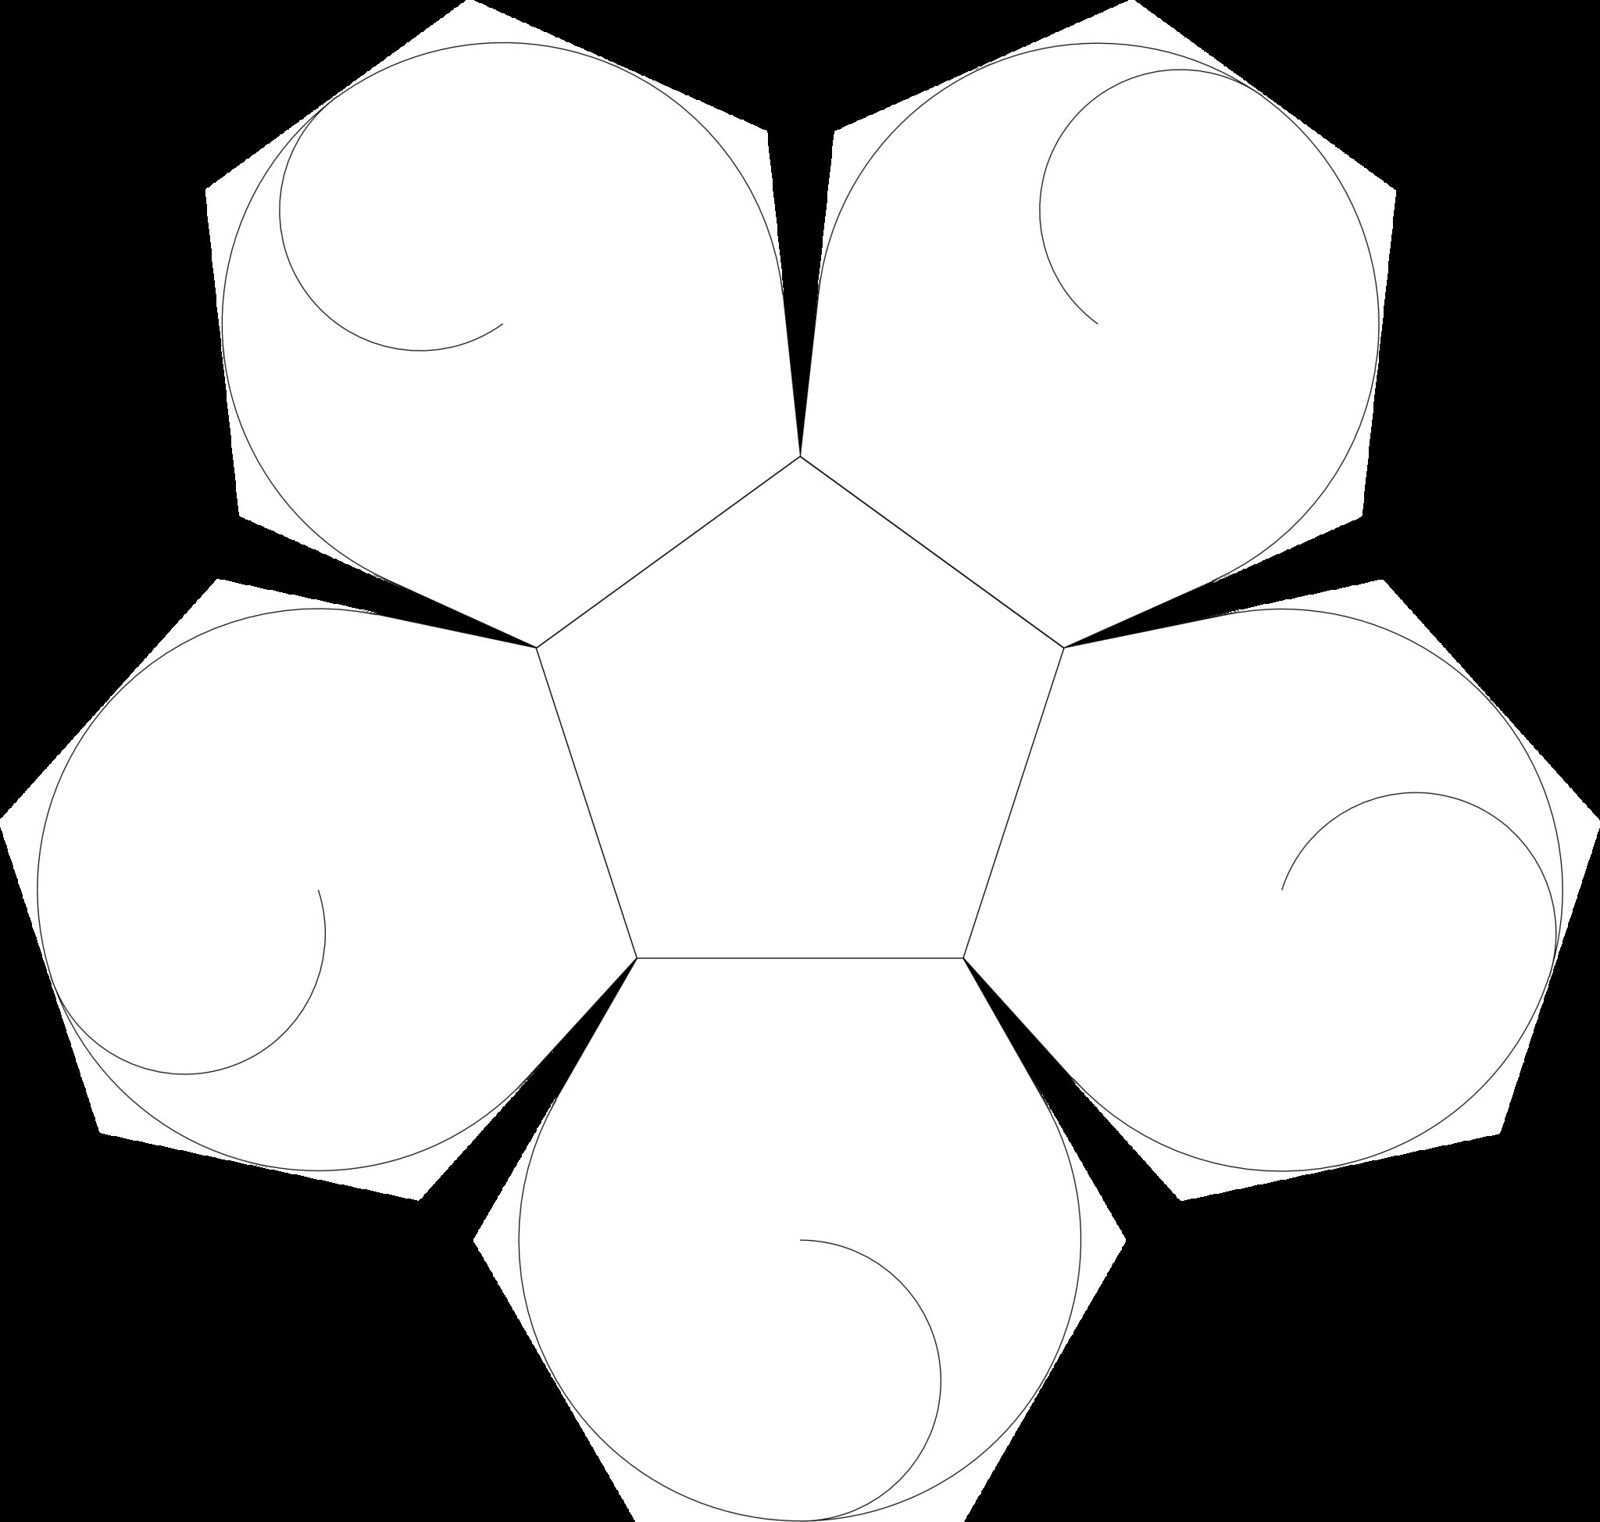 Buckyball Flower Paper Balls Flowers How To Make